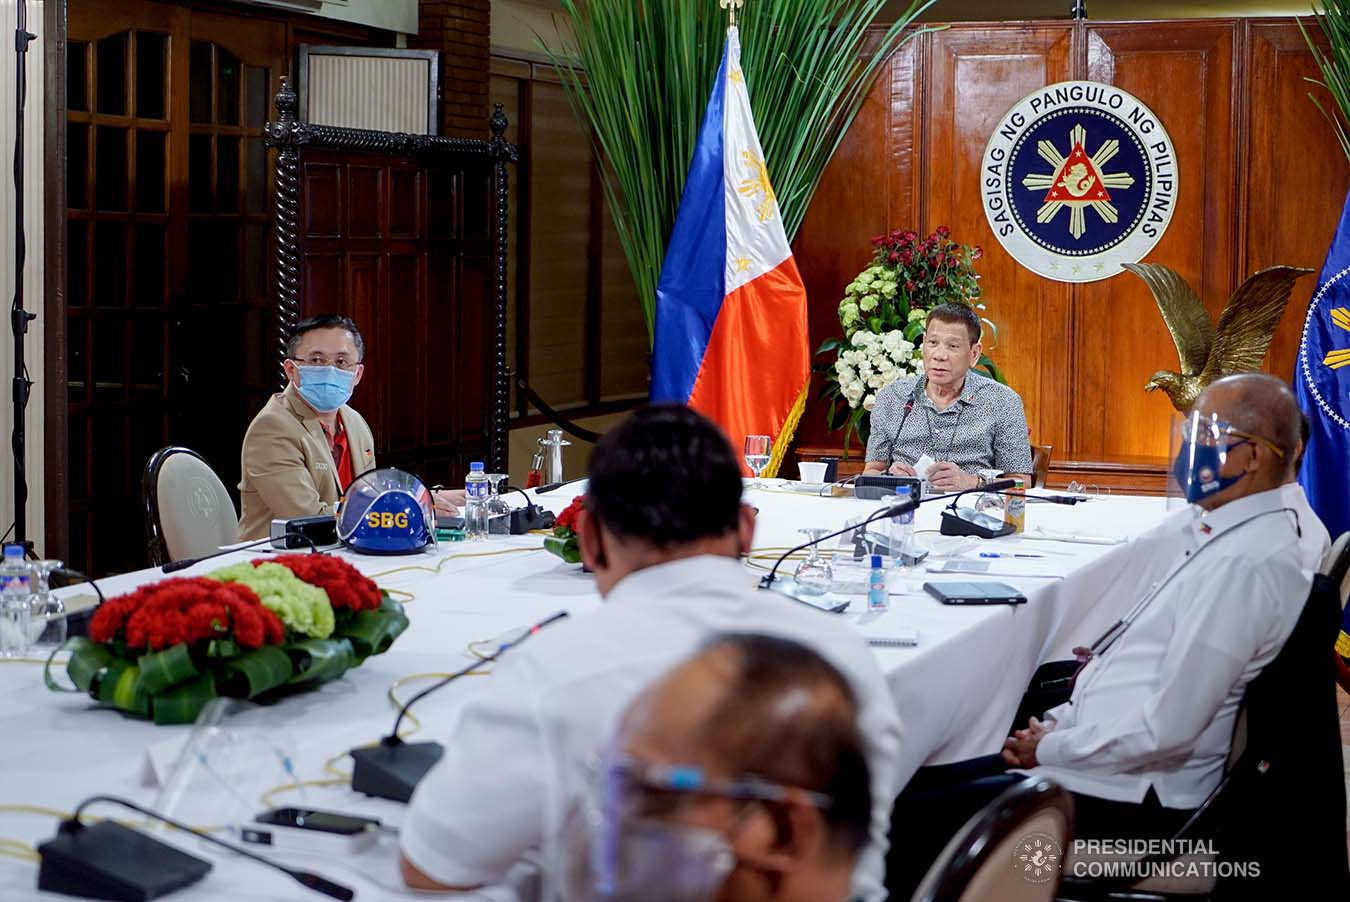 President Rodrigo Roa Duterte talks to the people after holding a meeting with the Inter-Agency Task Force on the Emerging Infectious Diseases (IATF-EID) core members at the Malago Clubhouse in Malacañang on August 31, 2020. KING RODRIGUEZ/PRESIDENTIAL PHOTO